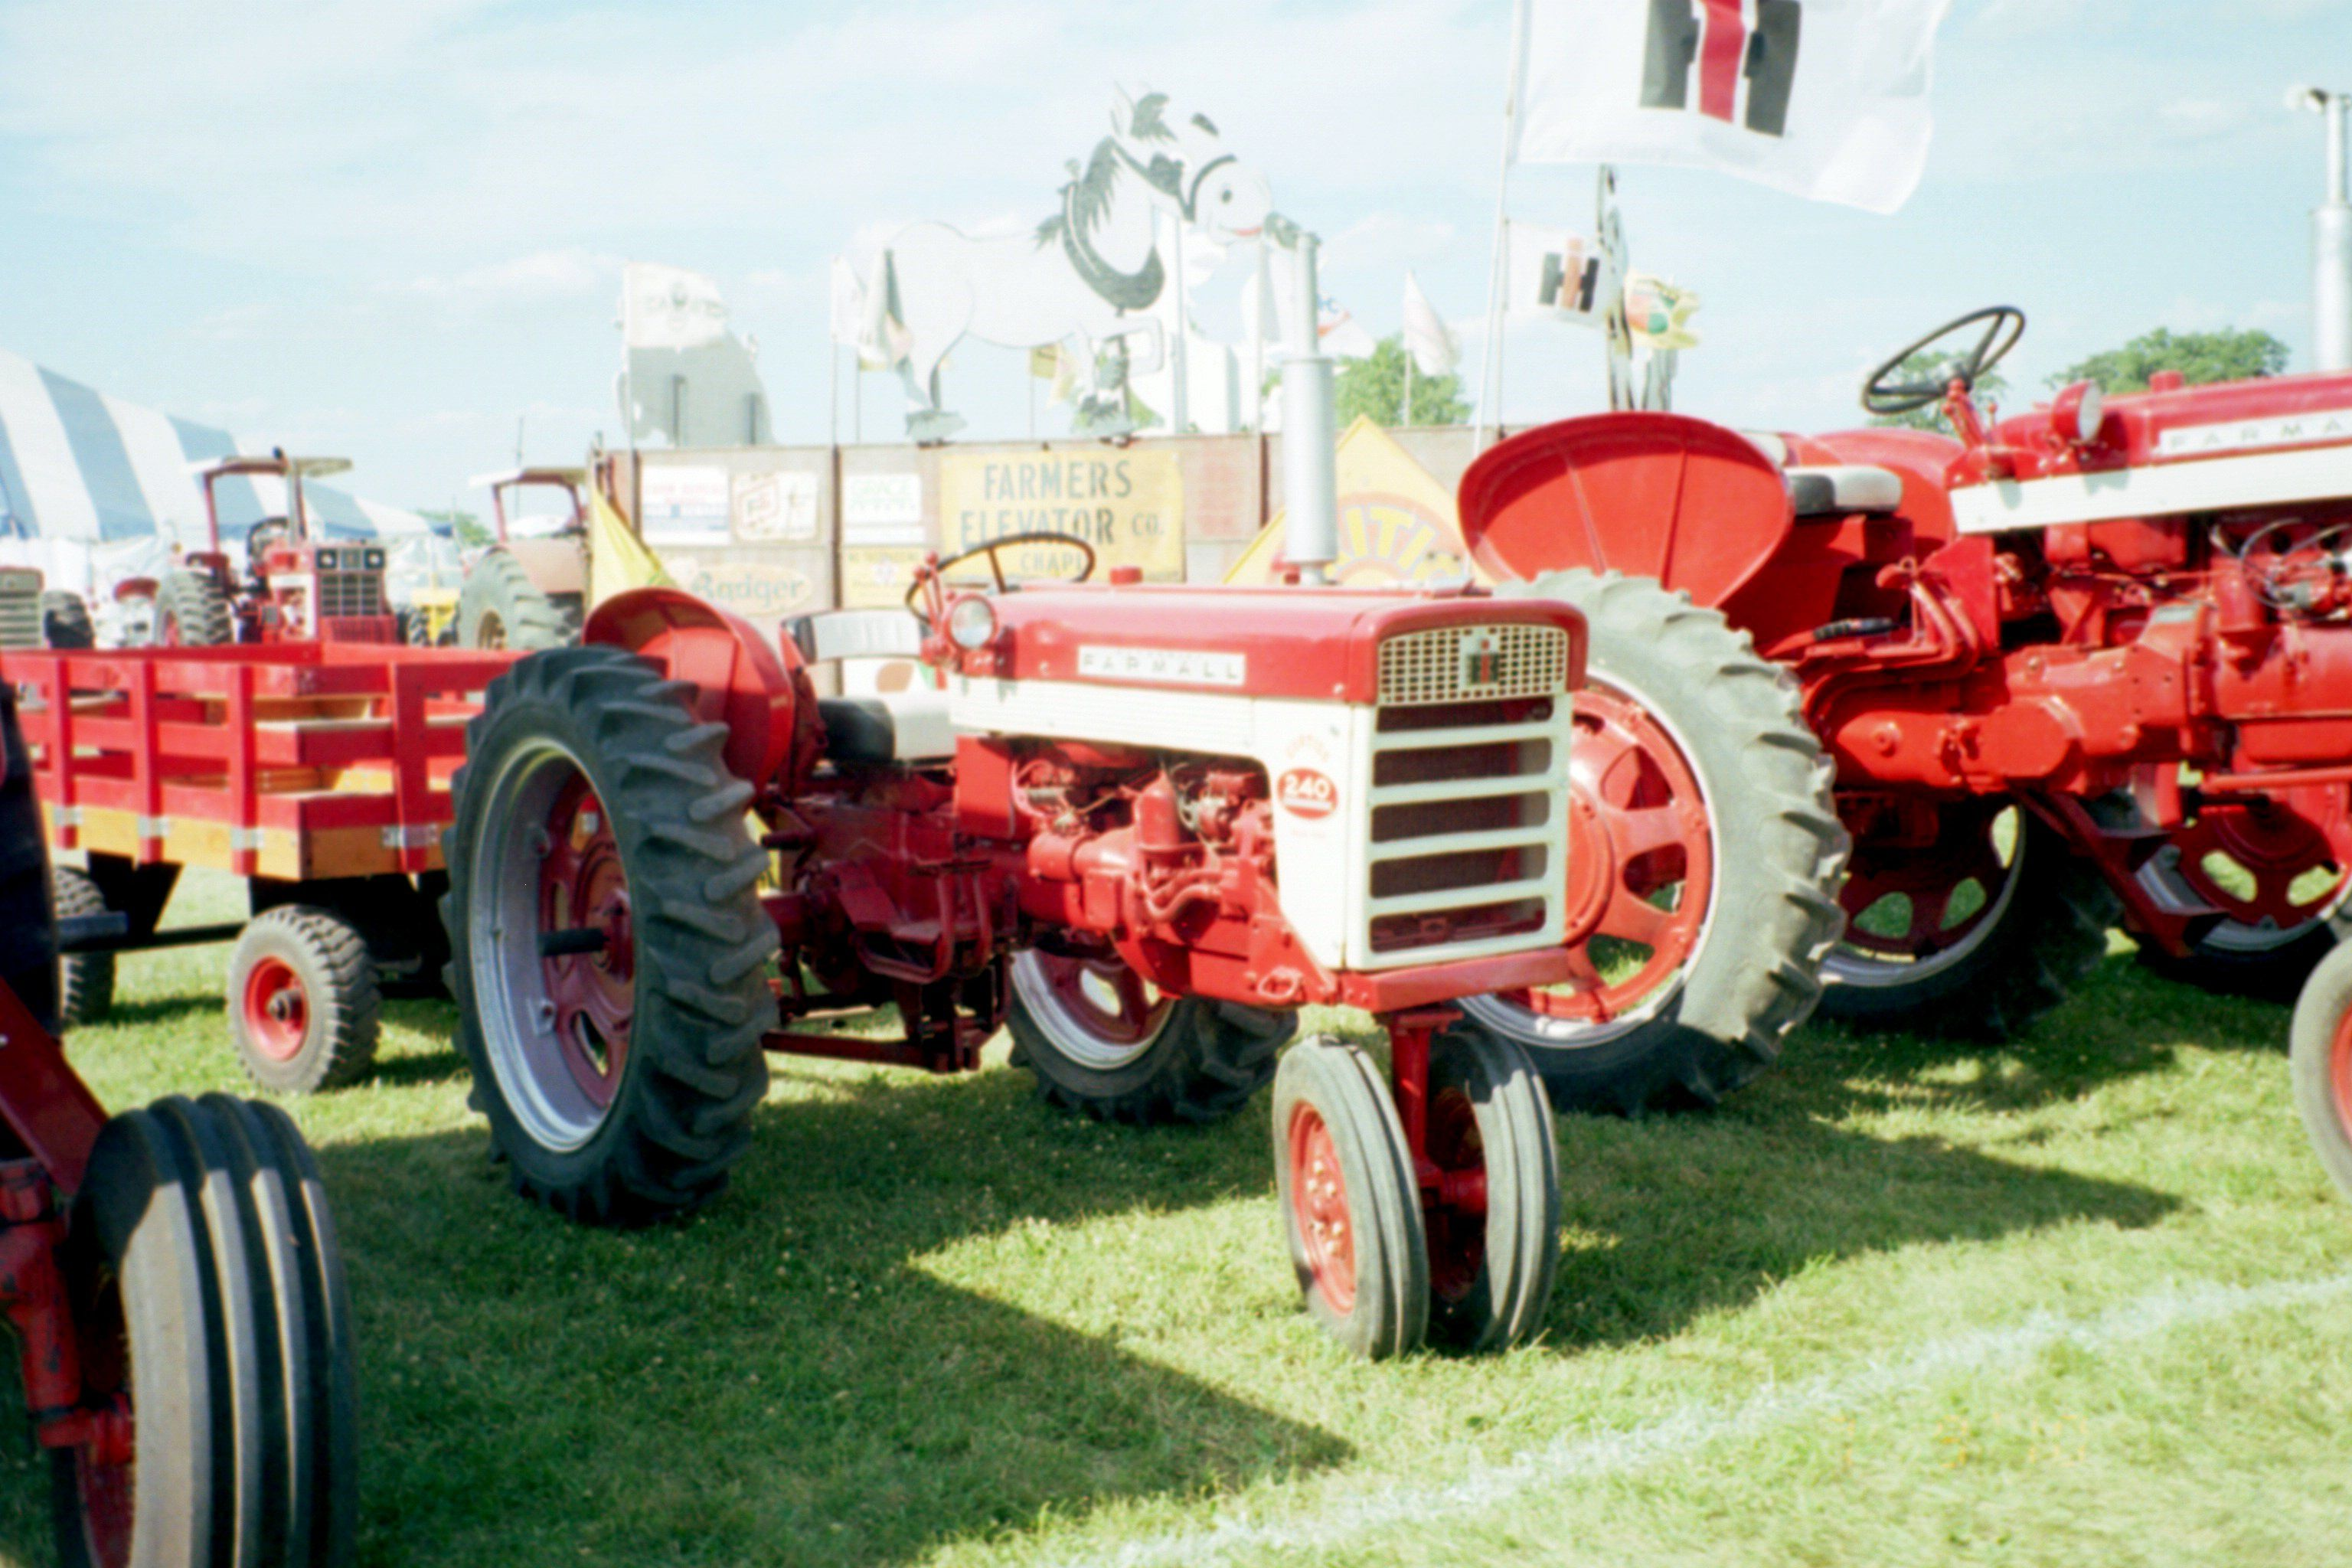 medium resolution of  farmall 460 electrical system john deere farmall 240 tractor ih equipment my pictures tractors red